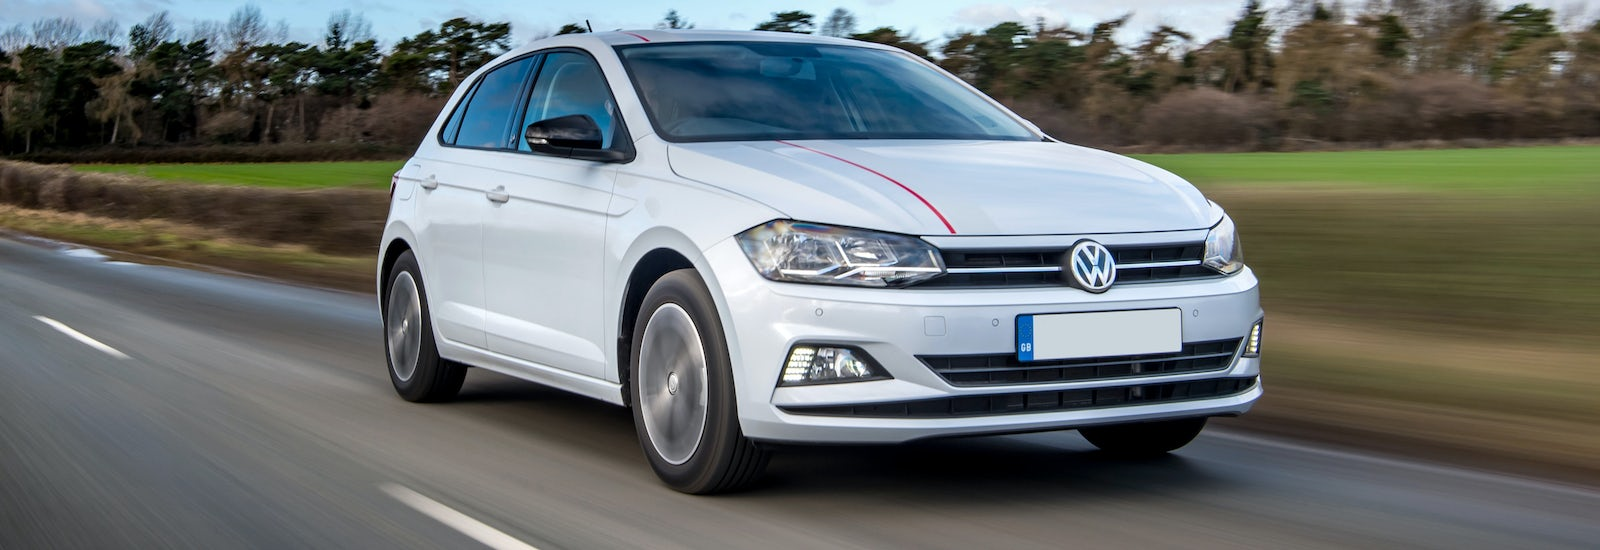 The best hatchback cars on sale 2017-18 | carwow